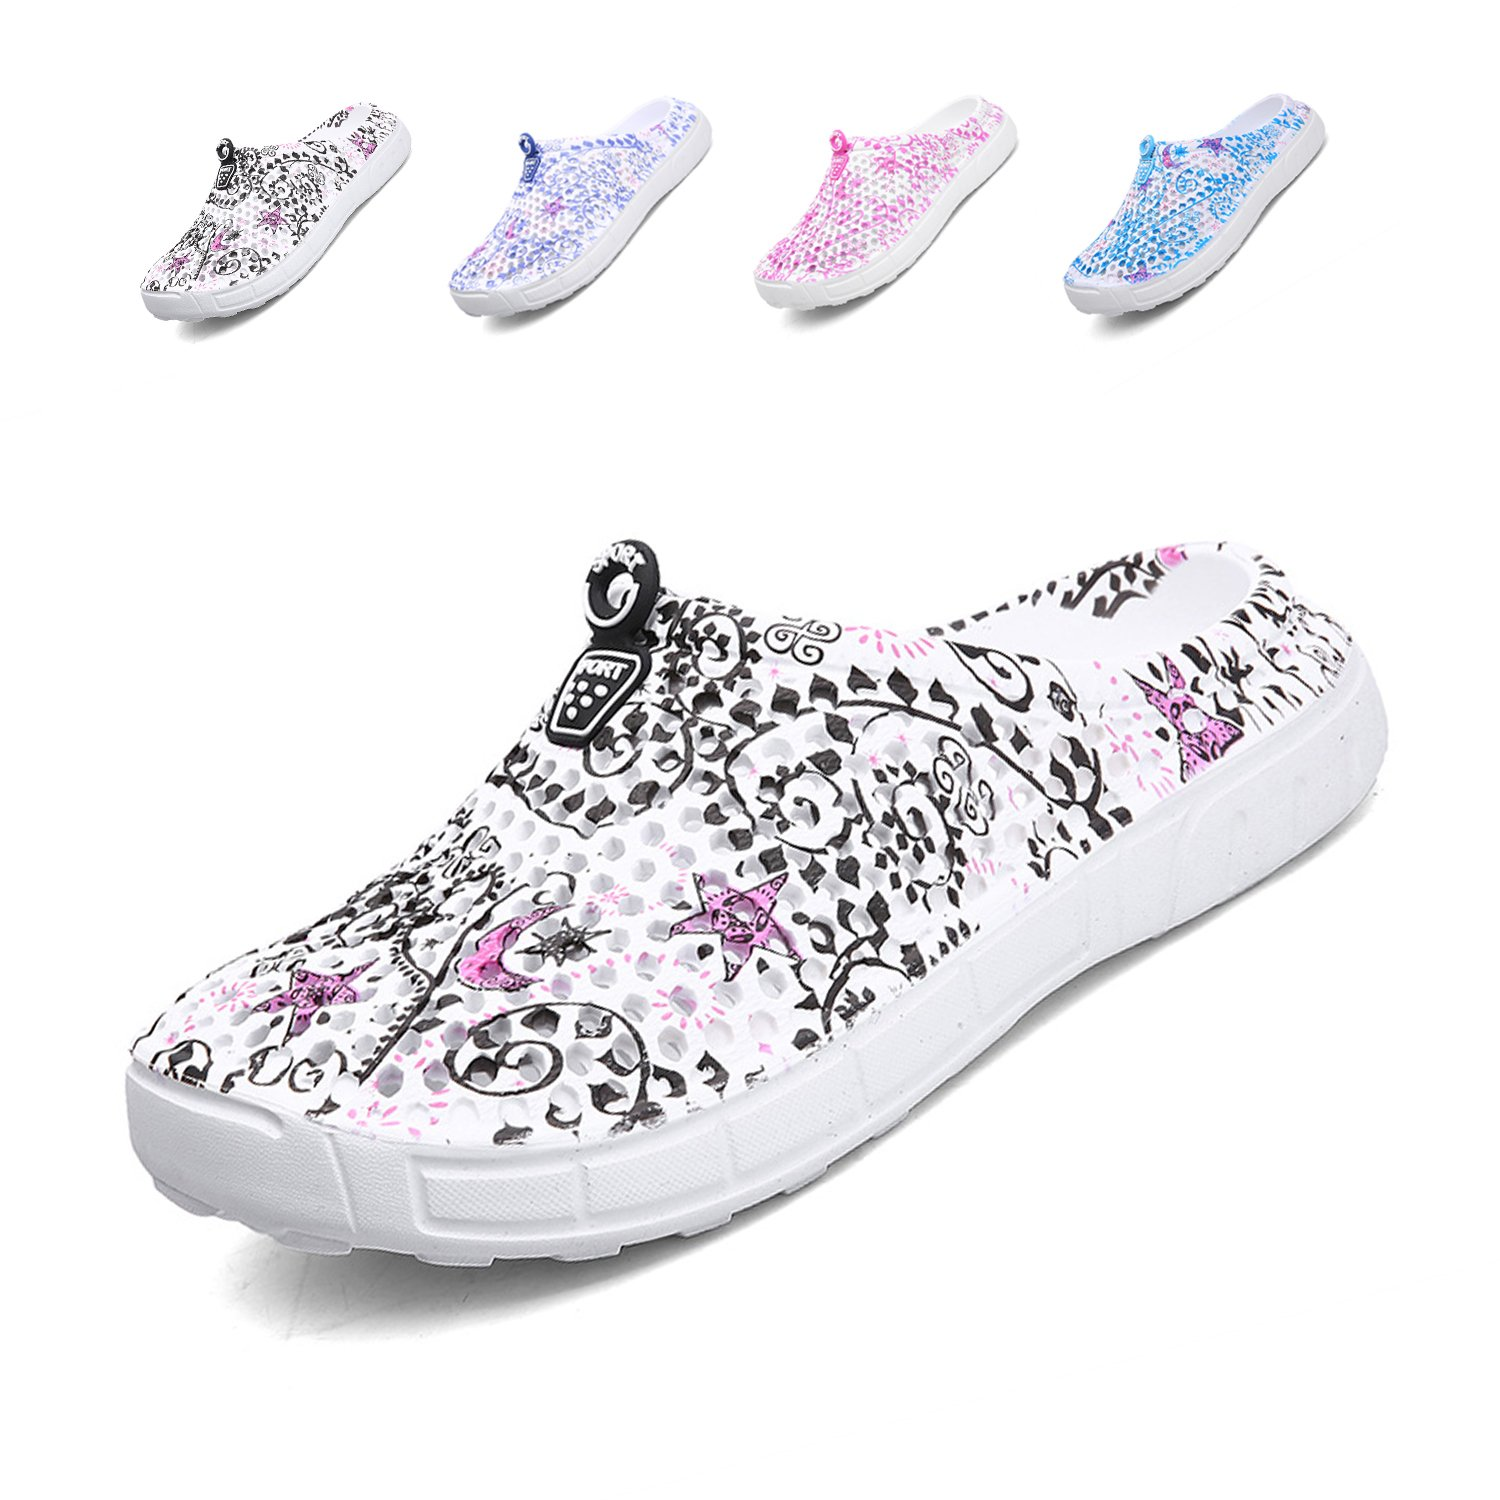 Unisex Quick-Dry Garden Clogs Shoes Comfort Walking Sandals Slippers Non-Slip Beach Shower Water Shoes Black Star 41